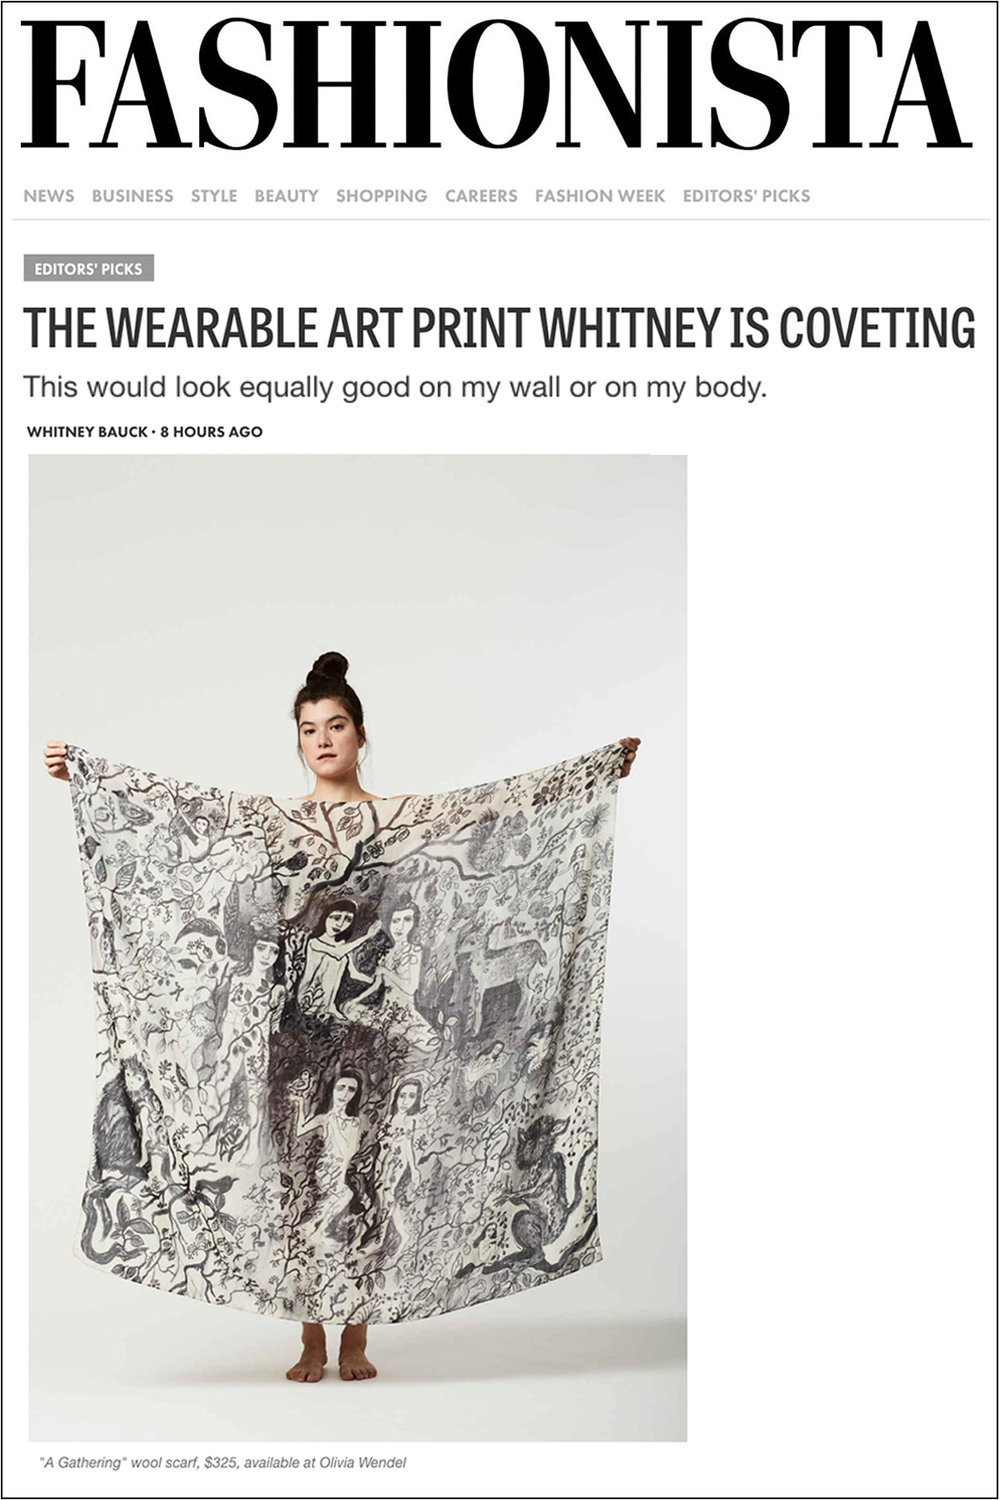 Fashionista: The Wearable Art Print Whitney is Coveting   January 18, 2017